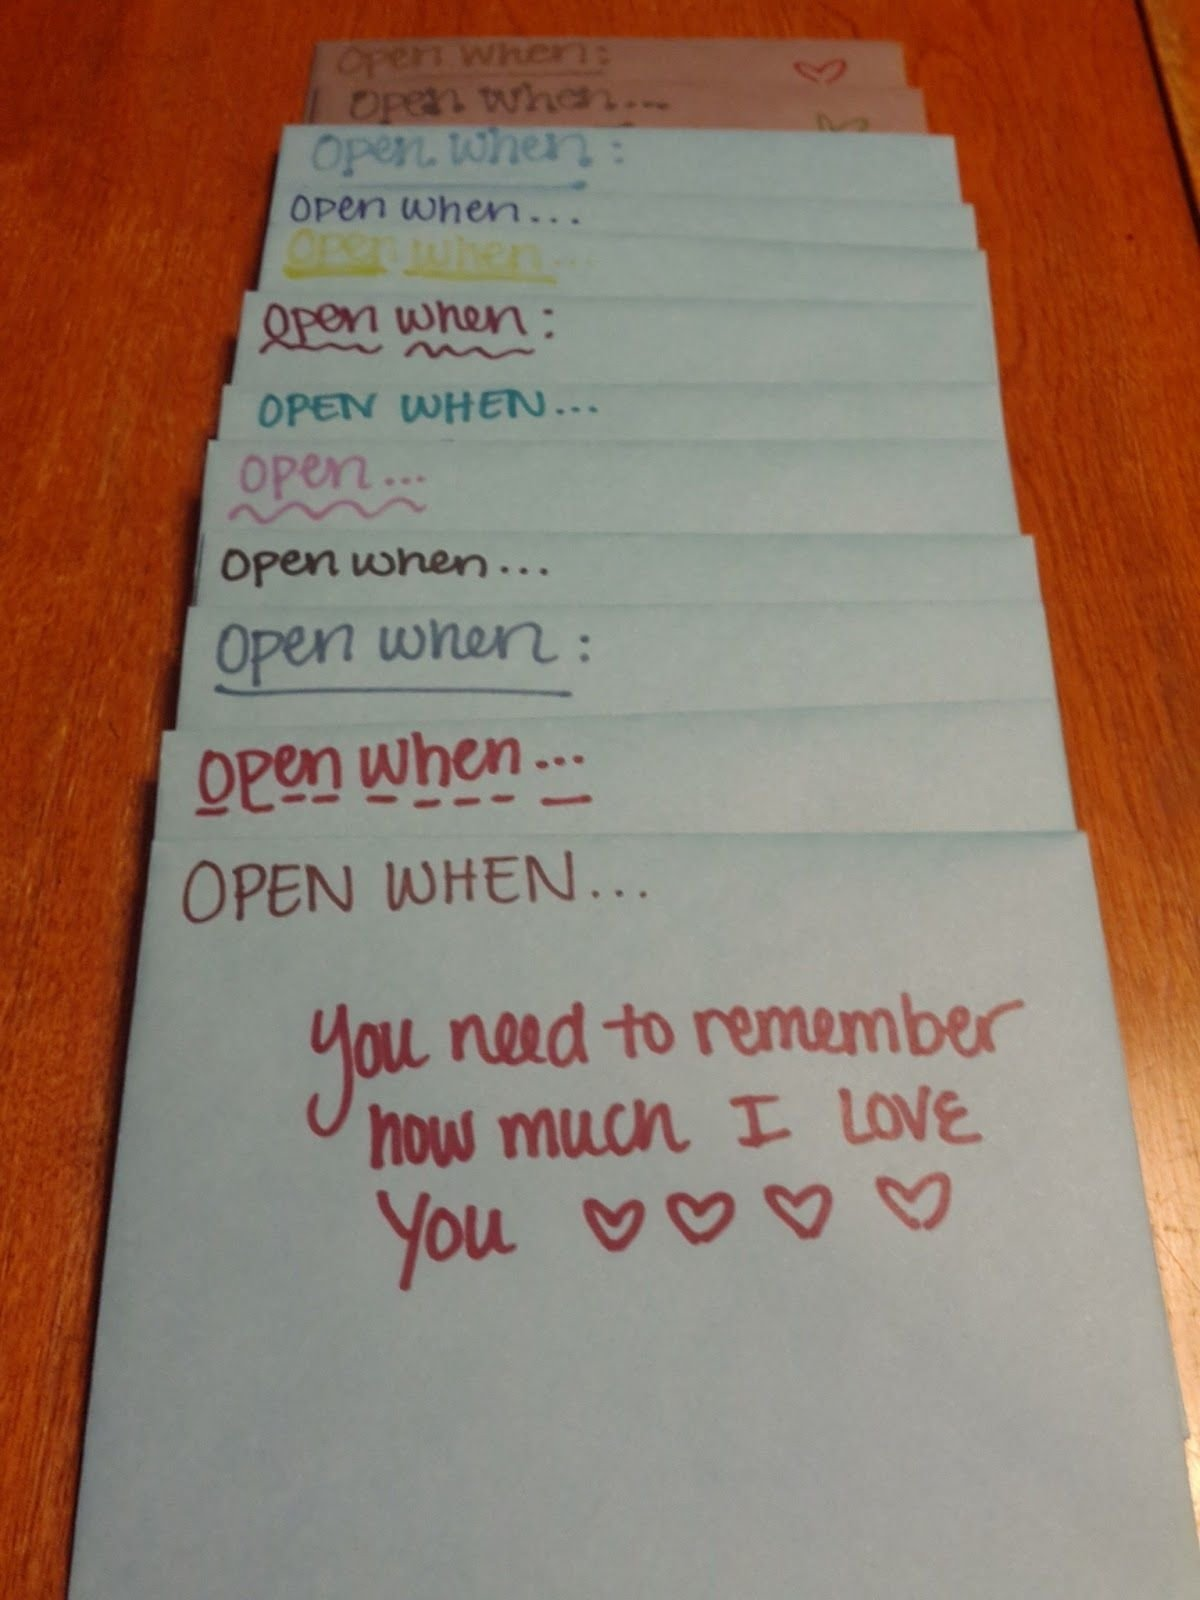 10 Lovable First Year Dating Anniversary Ideas life love lauren the paper gift you would really have to plan 3